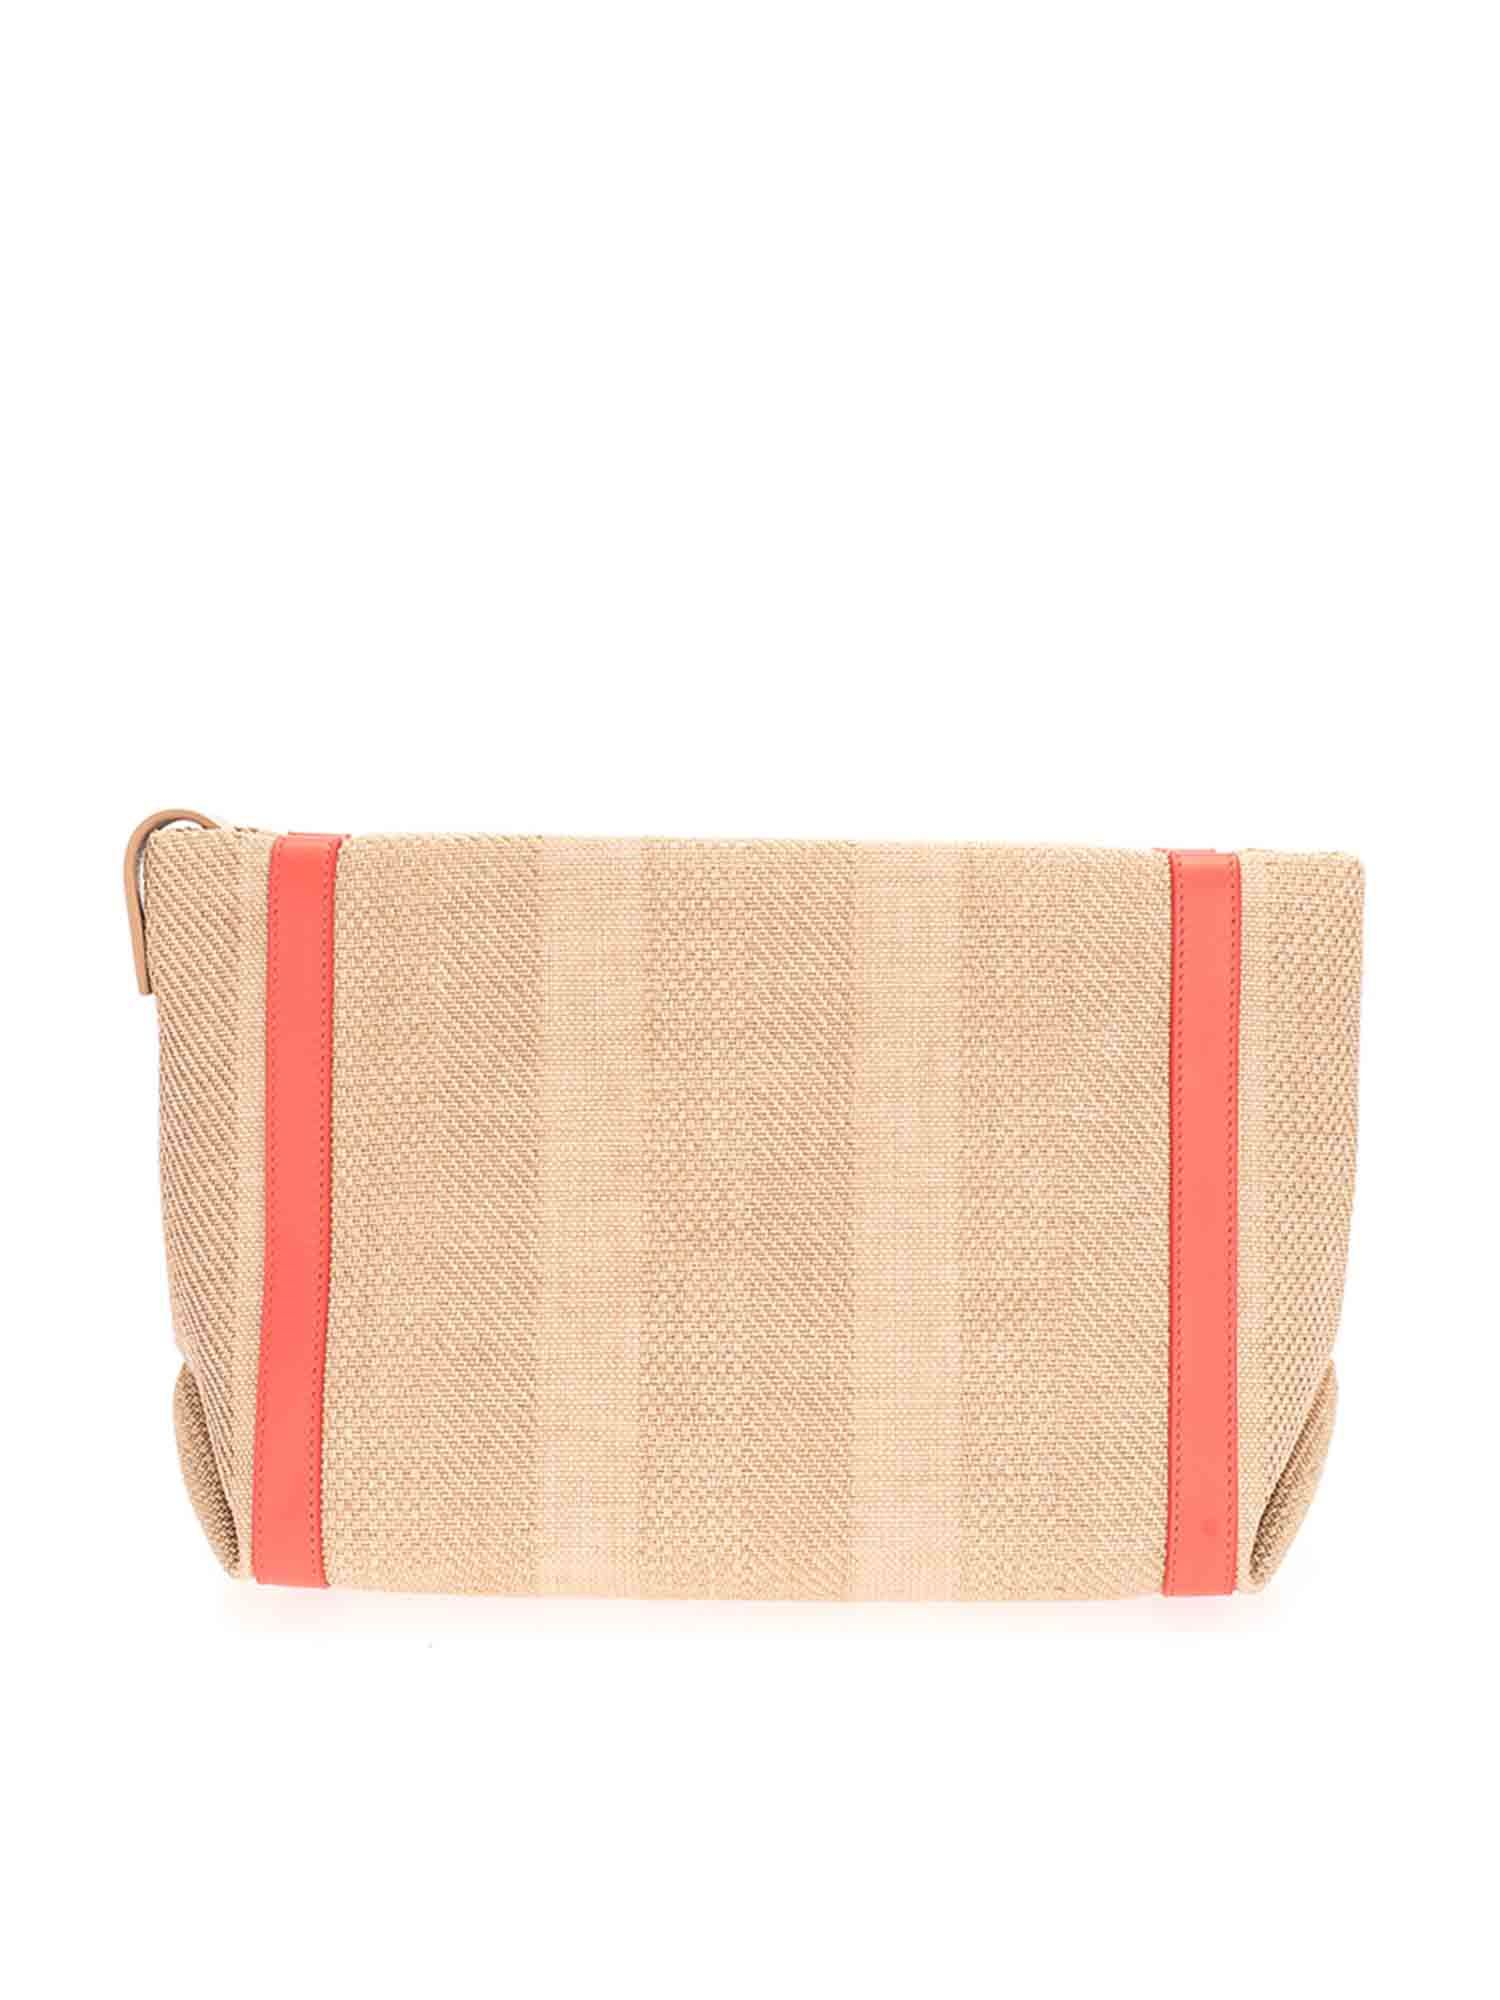 Loro Piana FABRIC CLUTCH BAG IN NATURAL AND SUNRISE COLOR